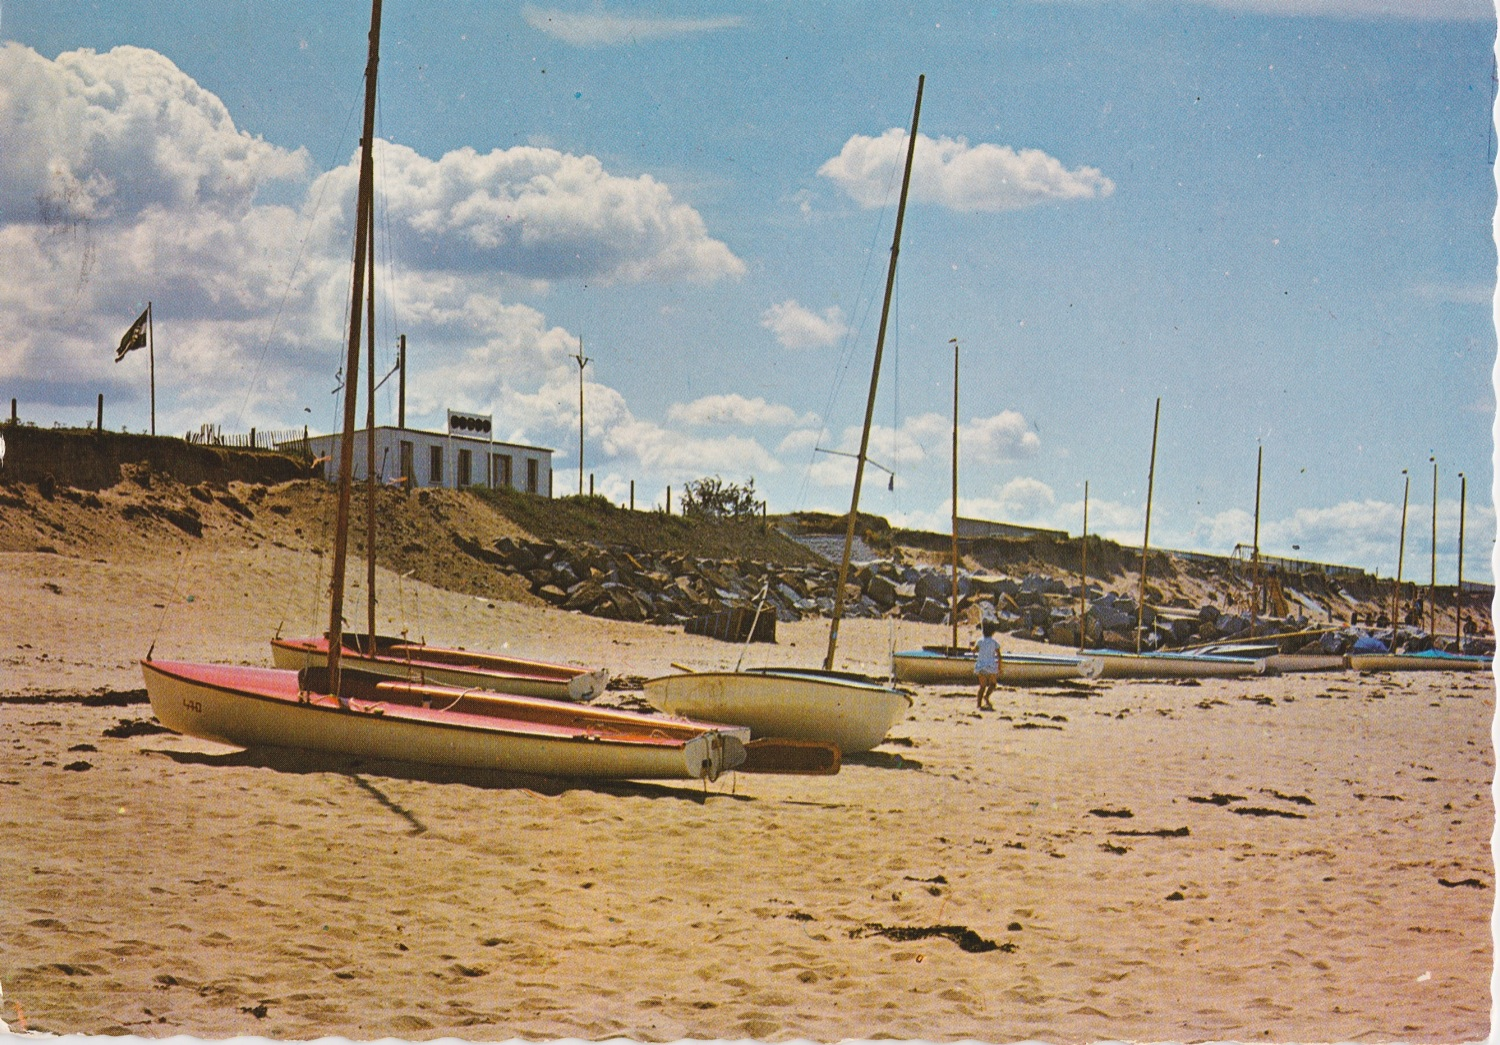 1968 St Martin Plage 4 © collection Jean Claude Ferret